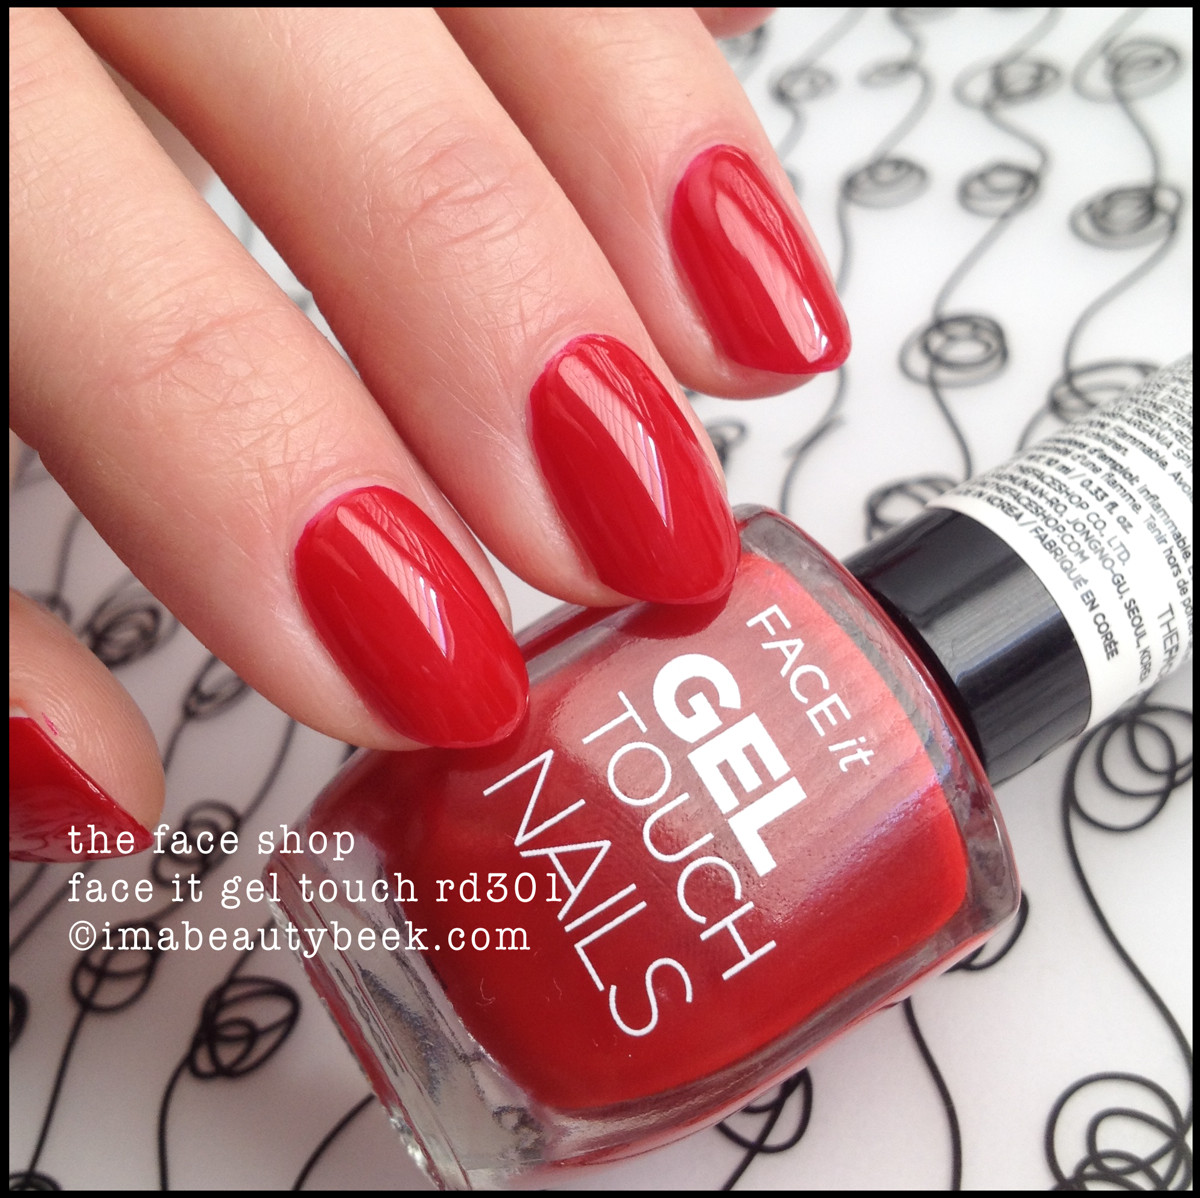 The Face Shop FaceIt Gel Touch rd301 Nail Polish